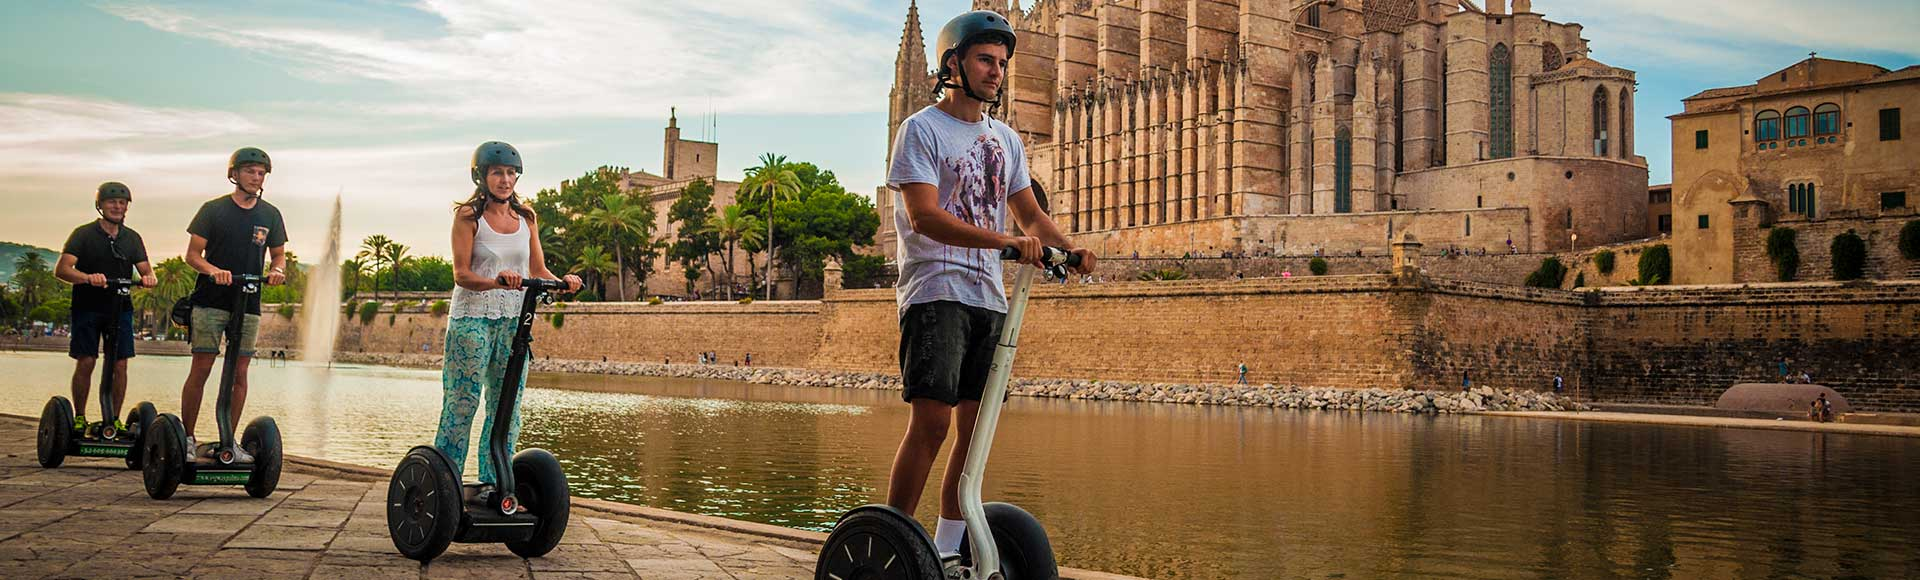 Book your segway tour in palma city